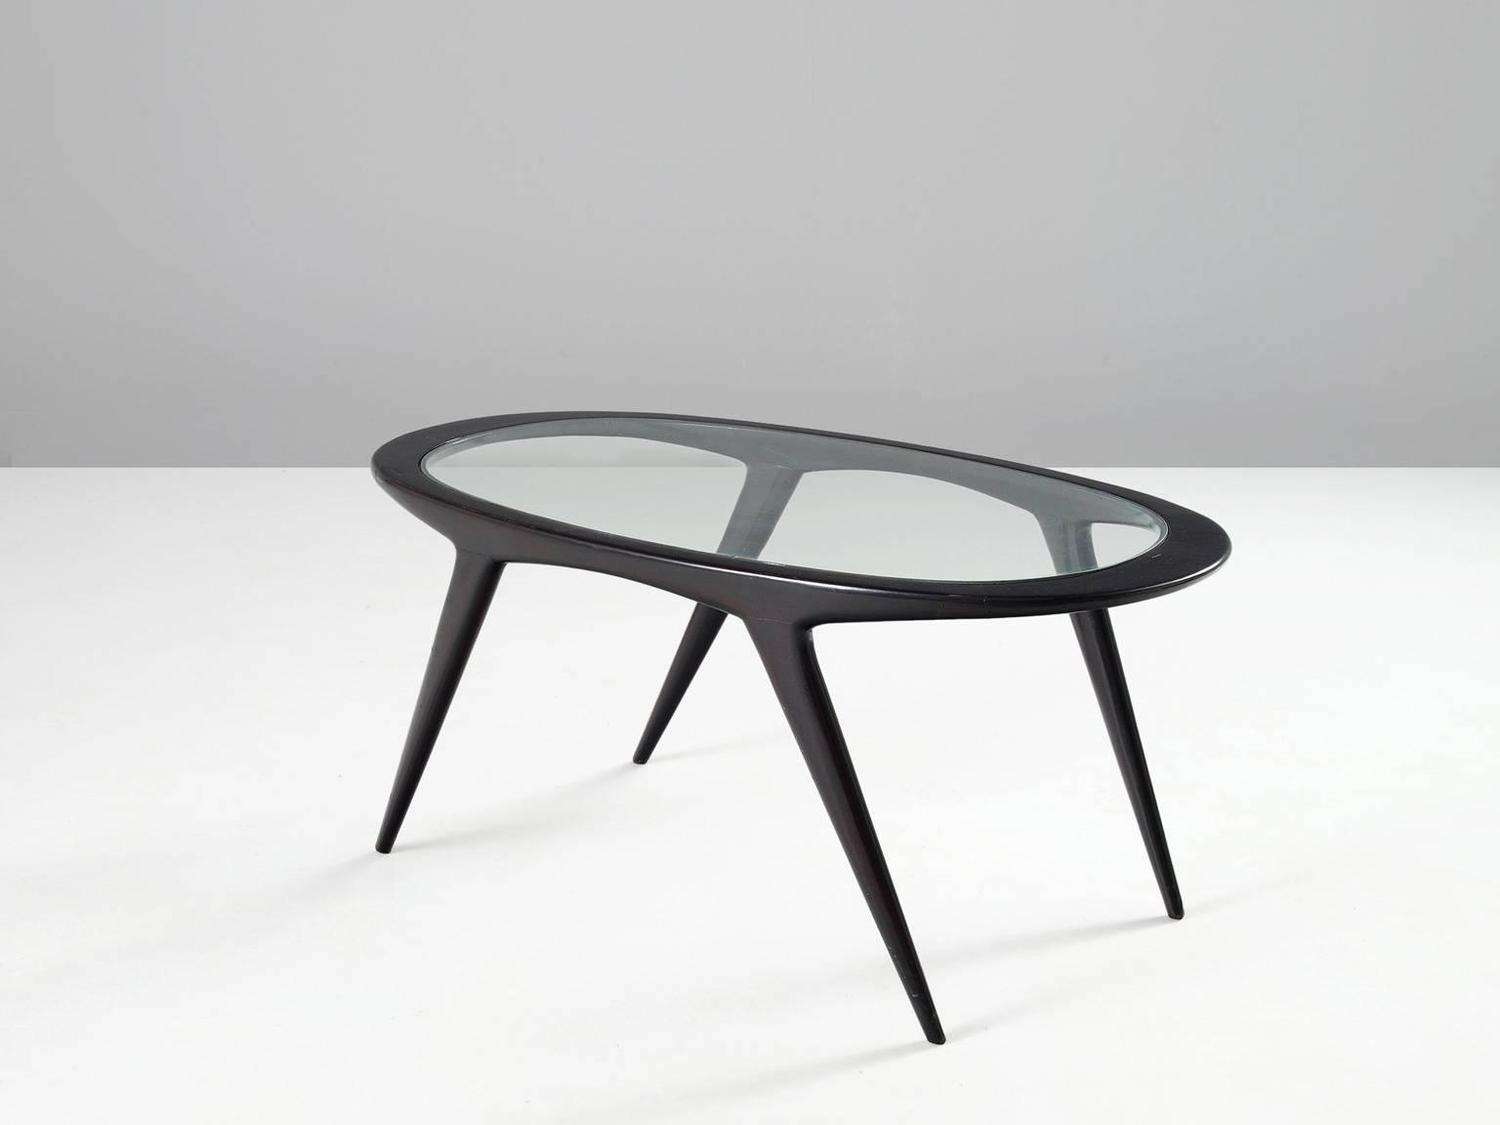 Black Ebonized Cocktail Table With Oval Glass Top For Sale At 1stdibs